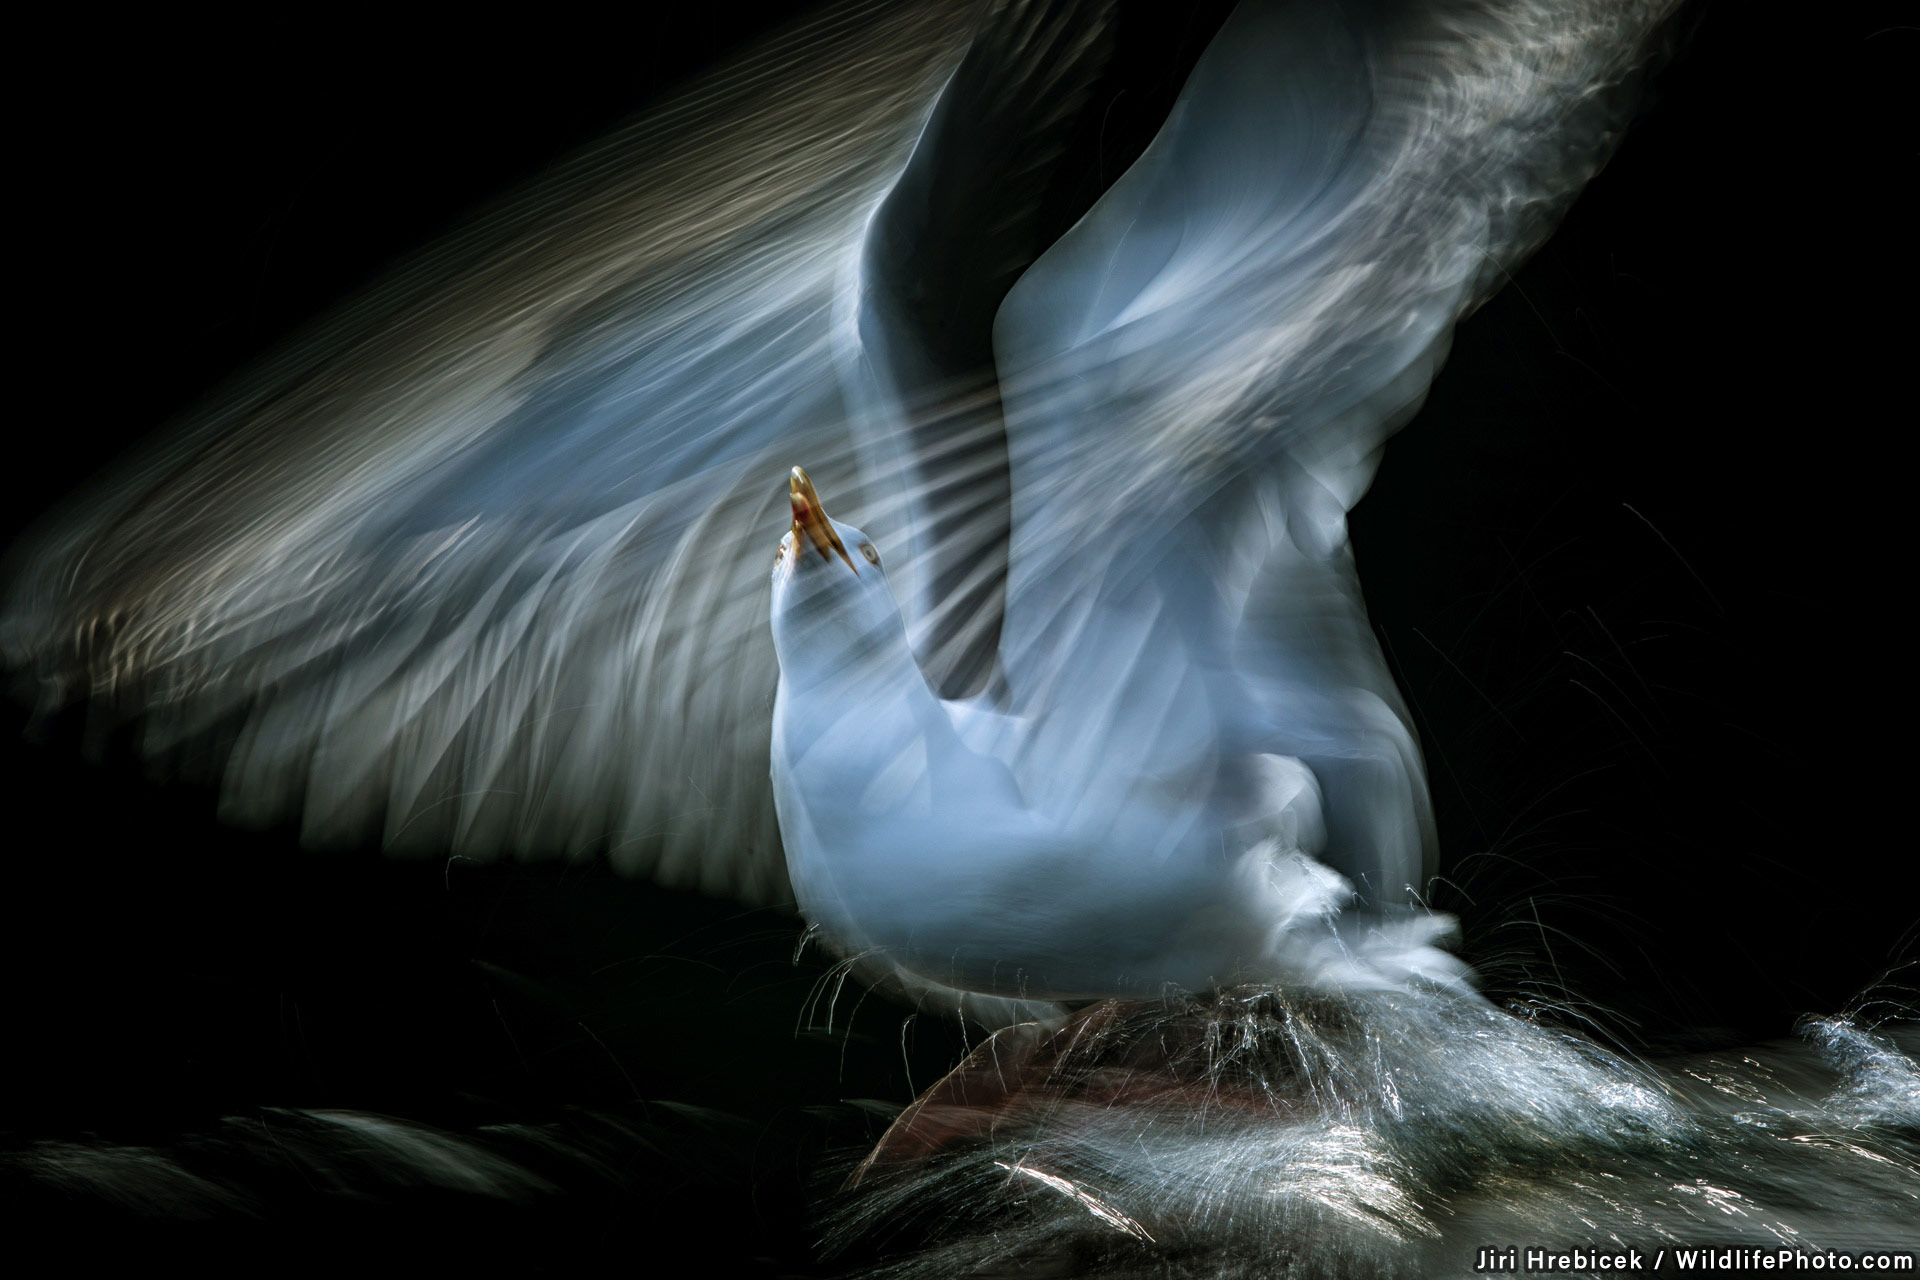 The Seagull, © Jiri Hrebicek, Highly Commended, Wildlife Portraits Photo Contest